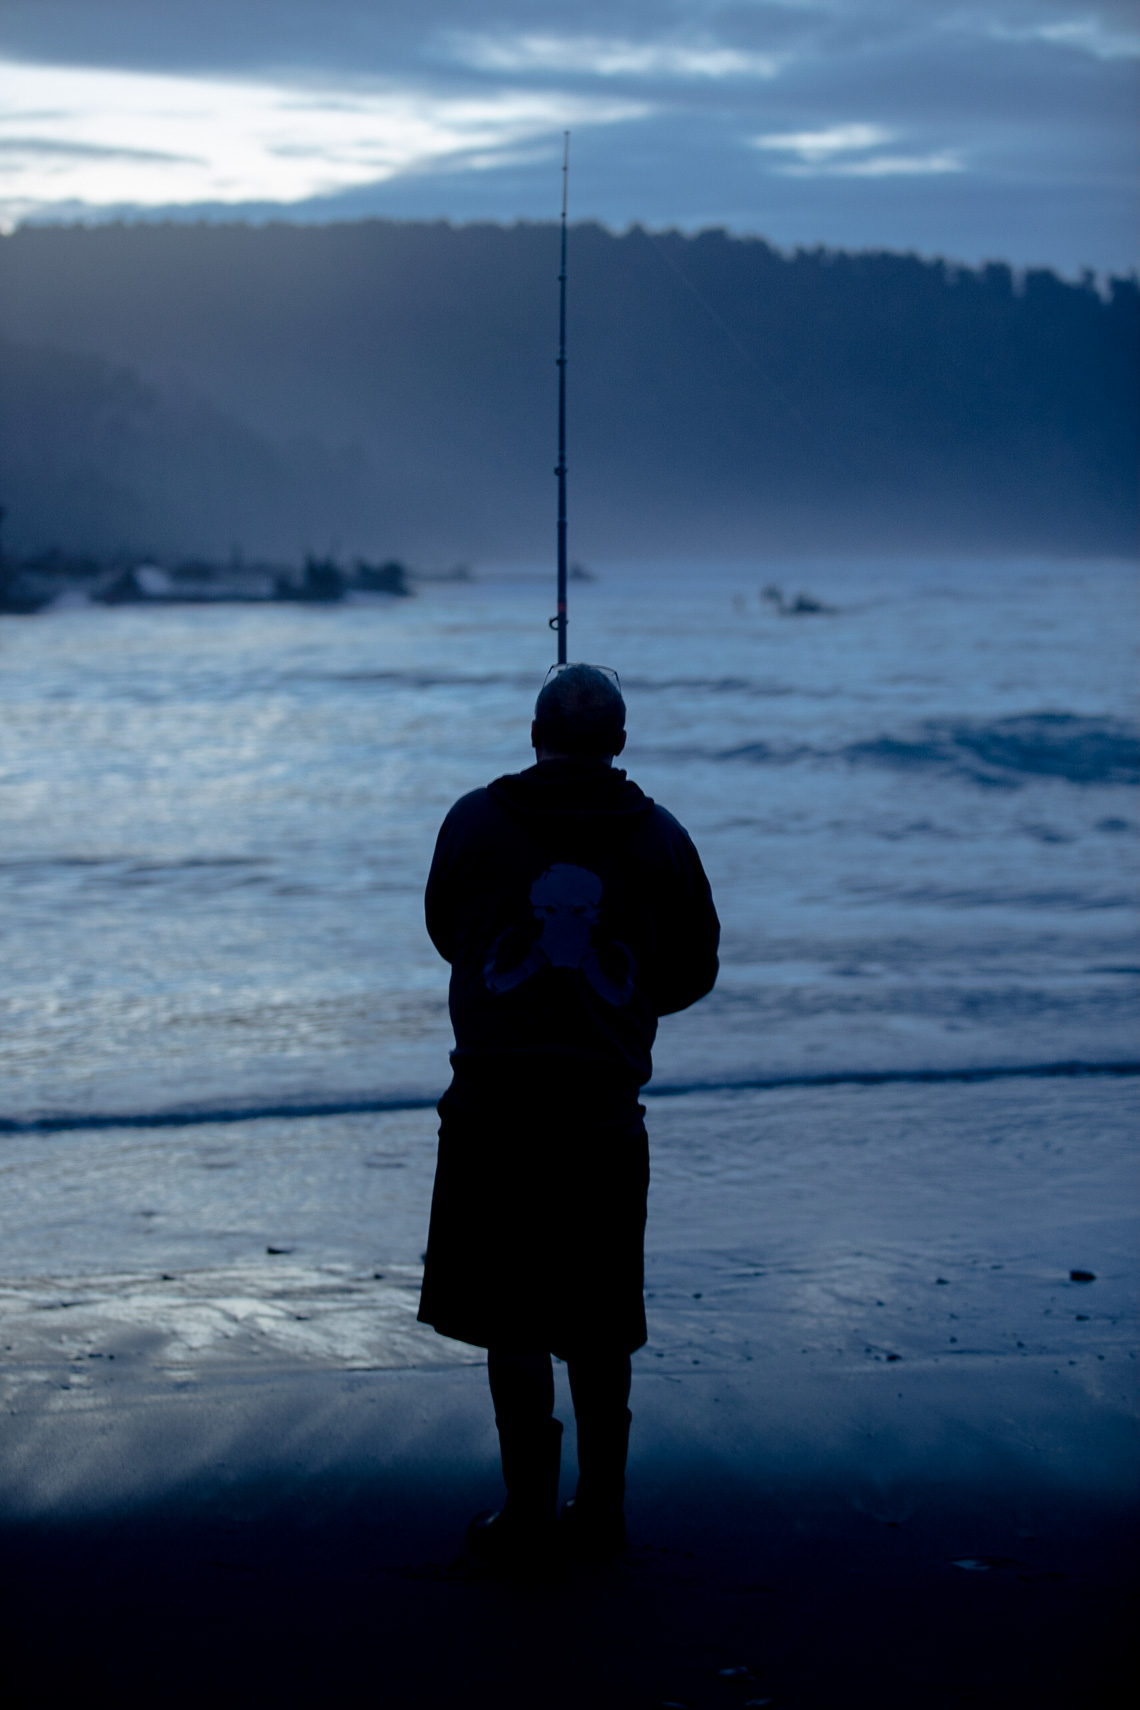 Fisherman at dusk on the West Coast of New Zealand by Paul Green Photographer